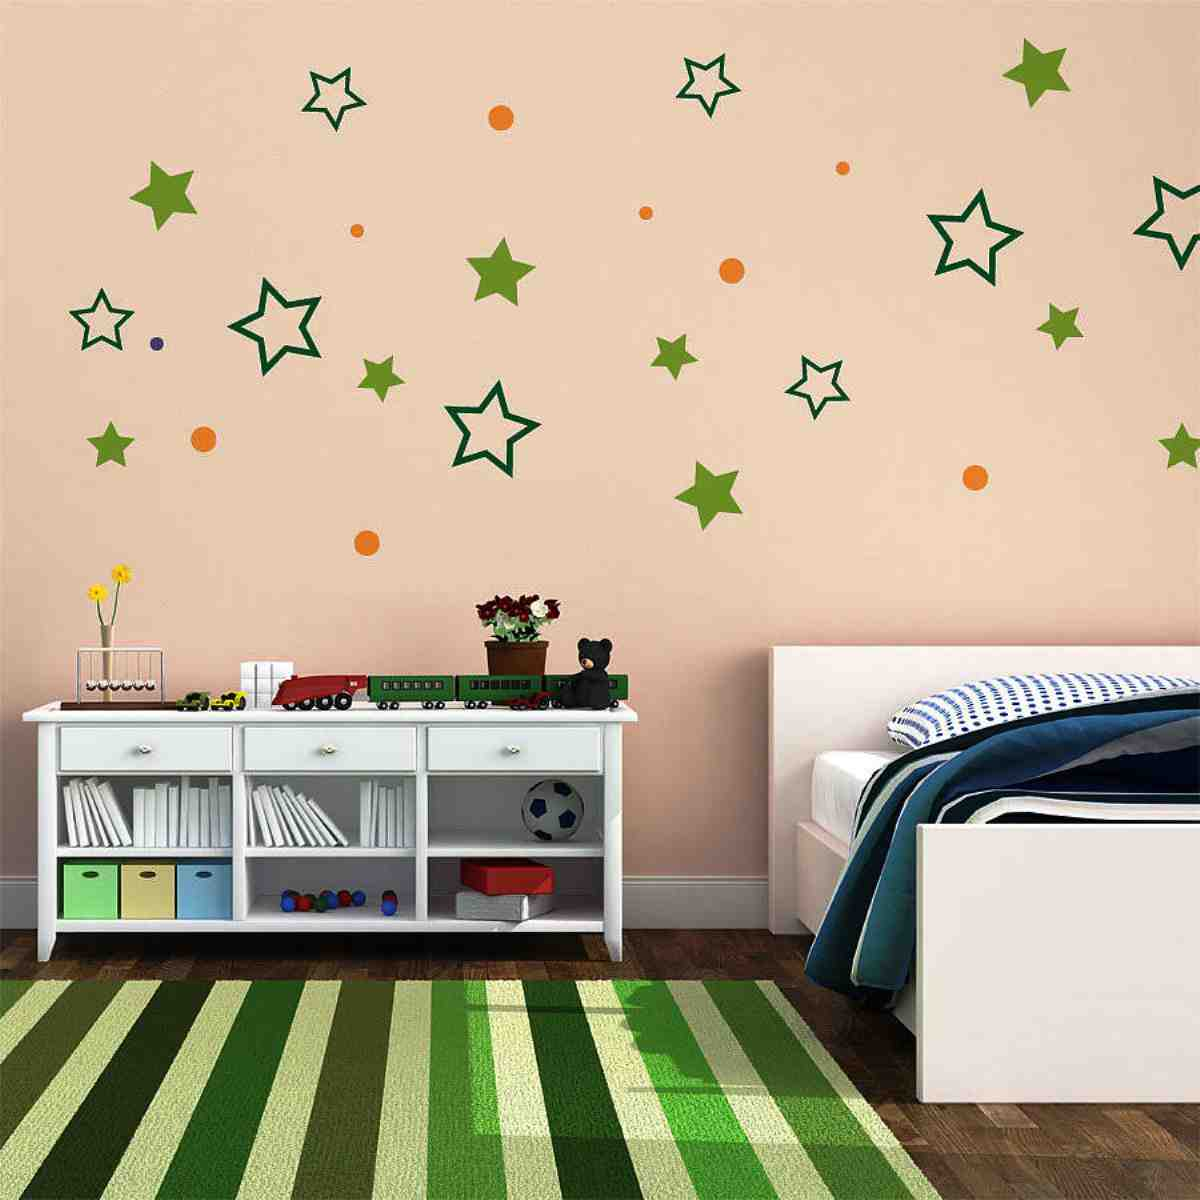 Bedroom Wall Design Ideas: Diy Wall Decor Ideas For Bedroom